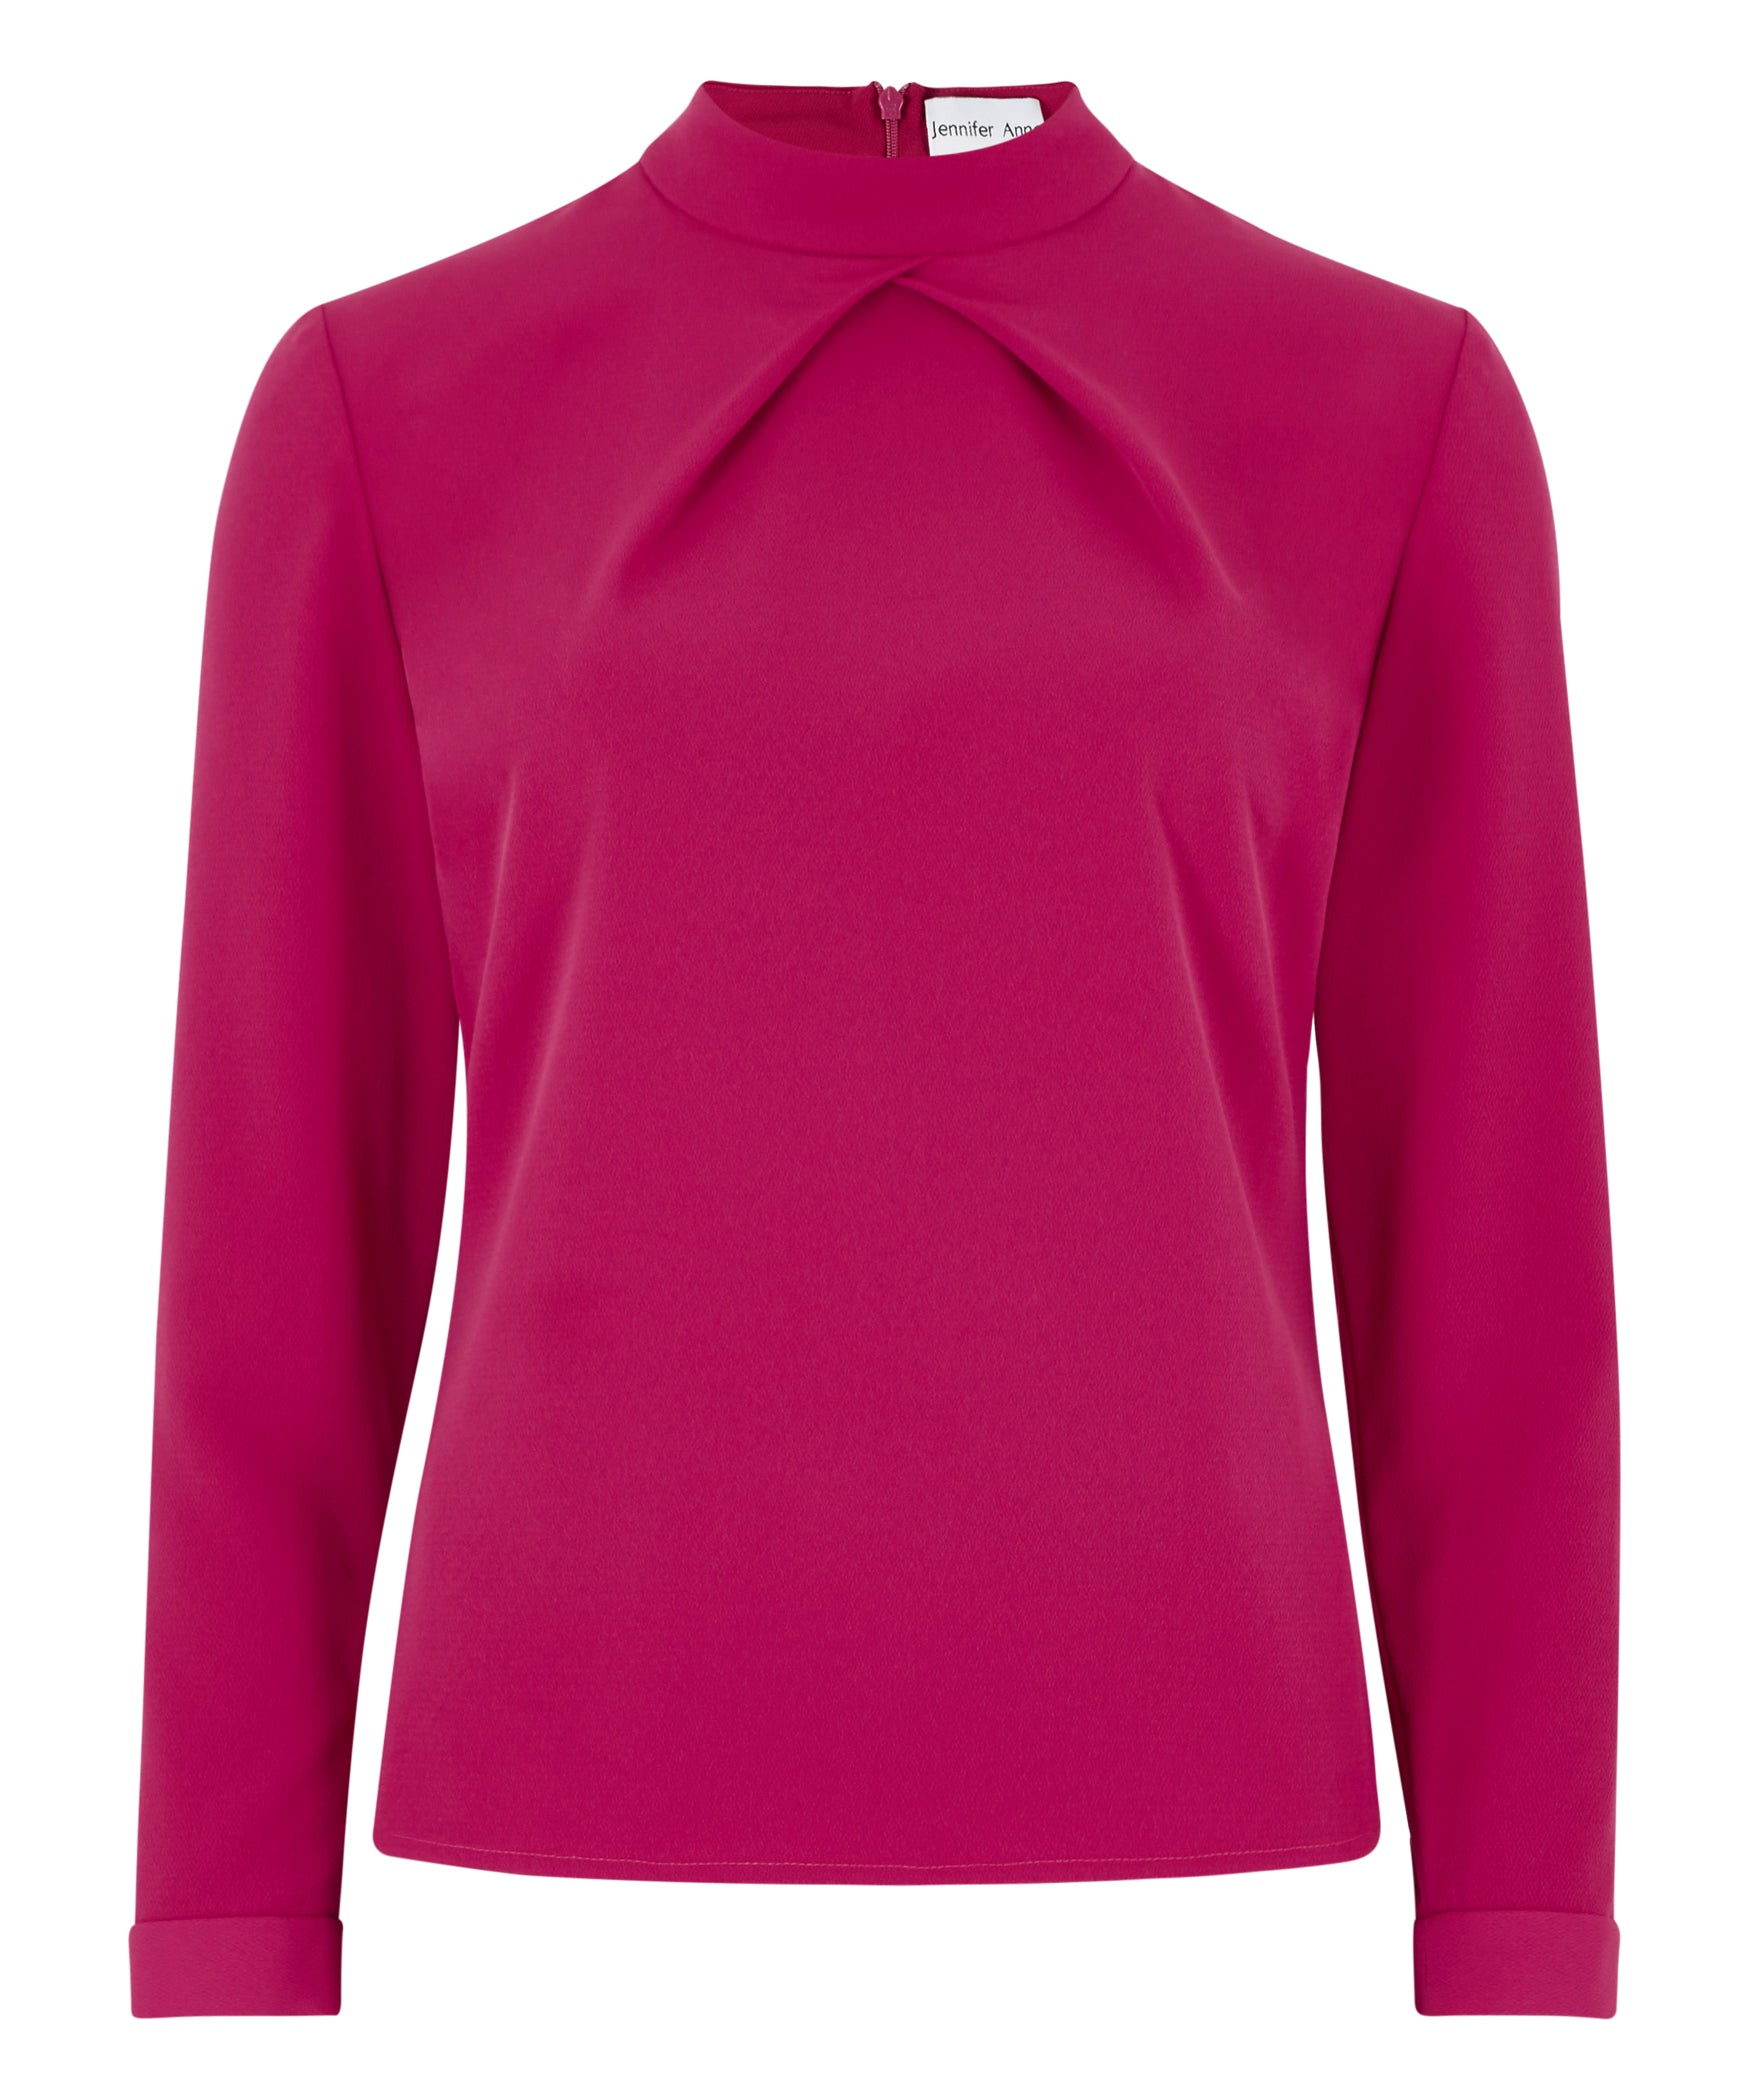 Petite Fuschia High Neck Top - Use Code Anniversary for 25% off!